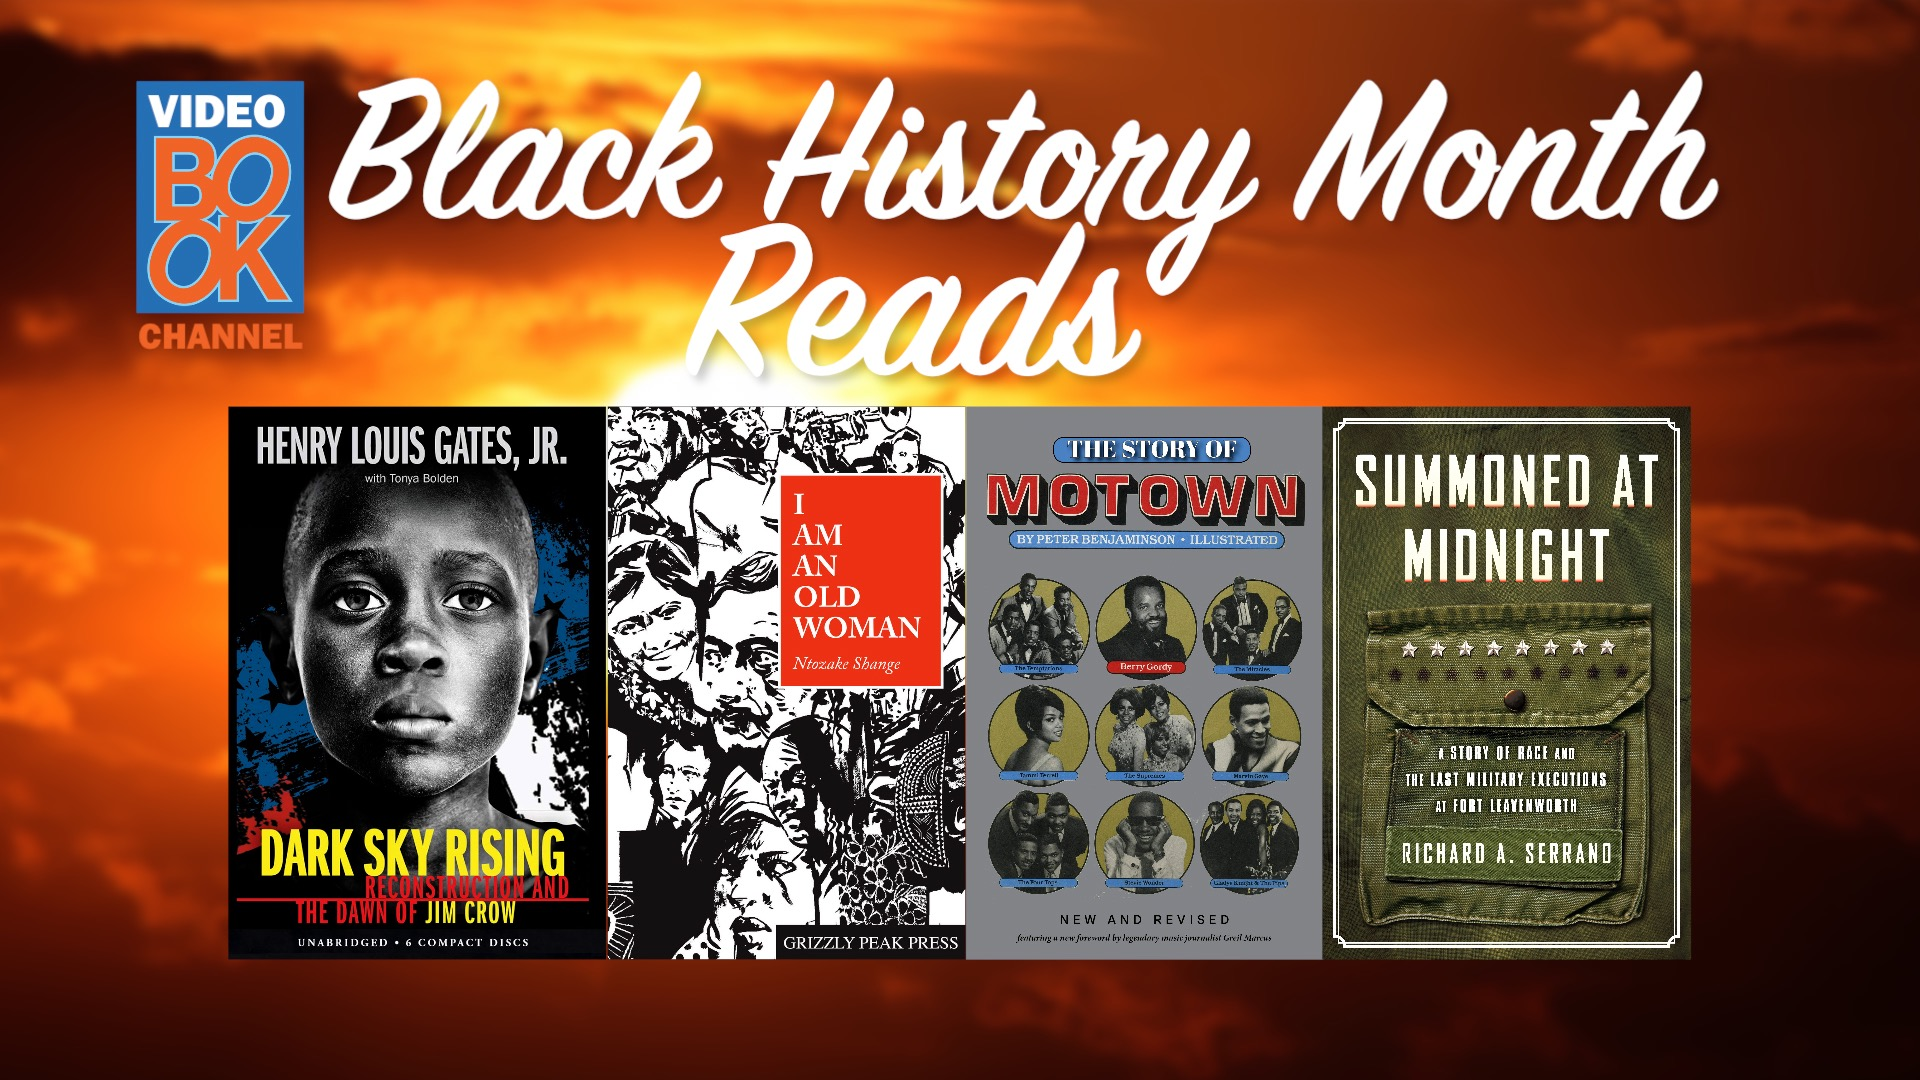 Black History Month Reads 2019 From The Book Channel Online